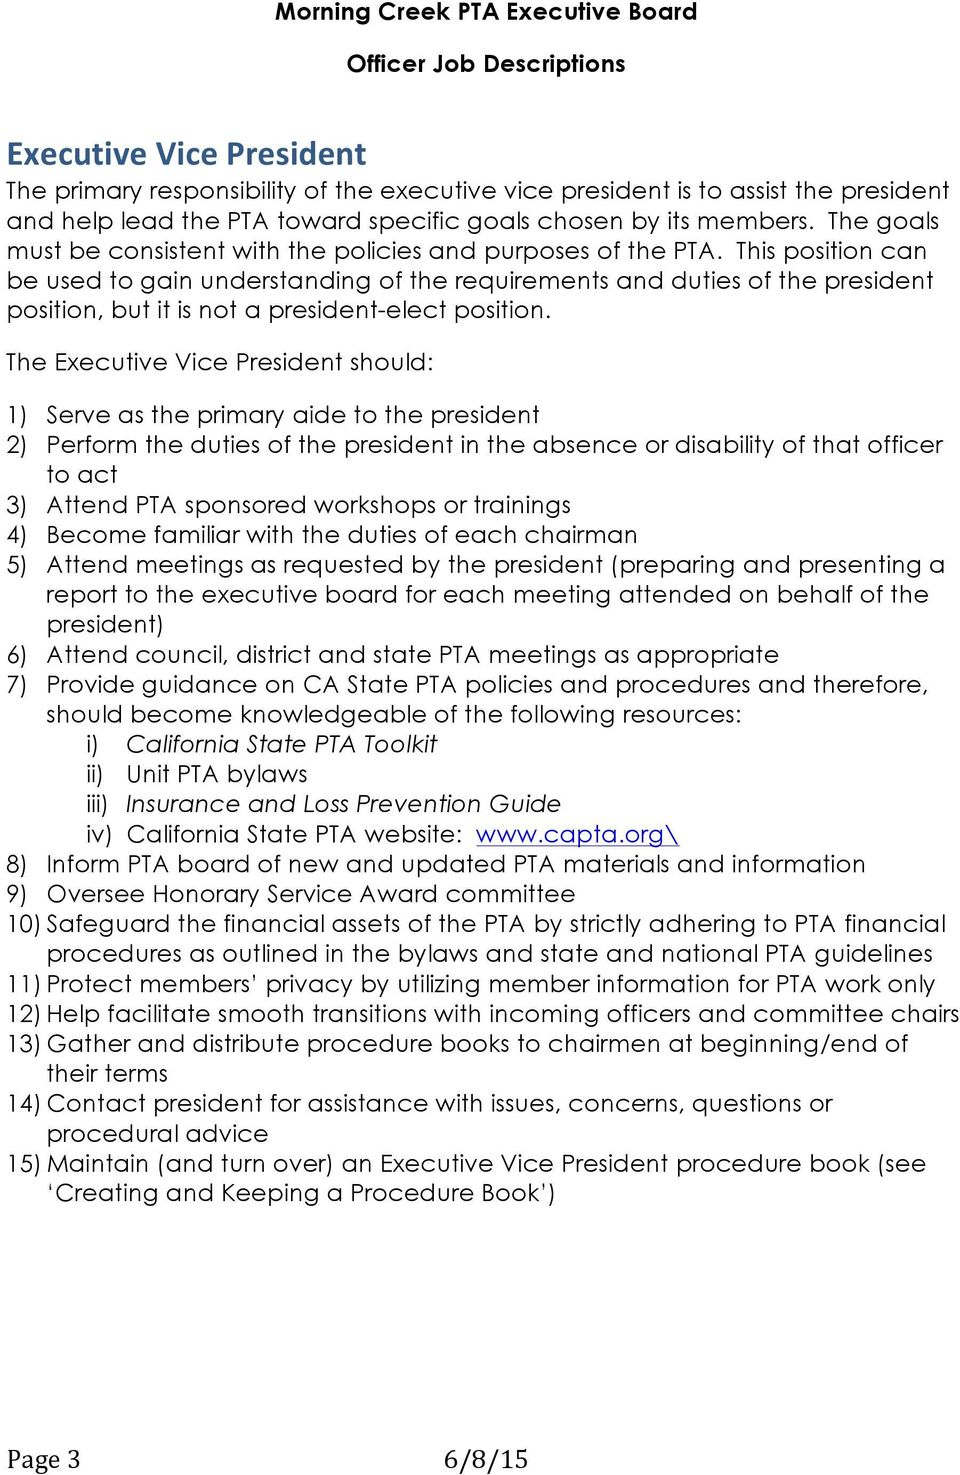 This position can be used to gain understanding of the requirements and duties of the president position, but it is not a president-elect position.